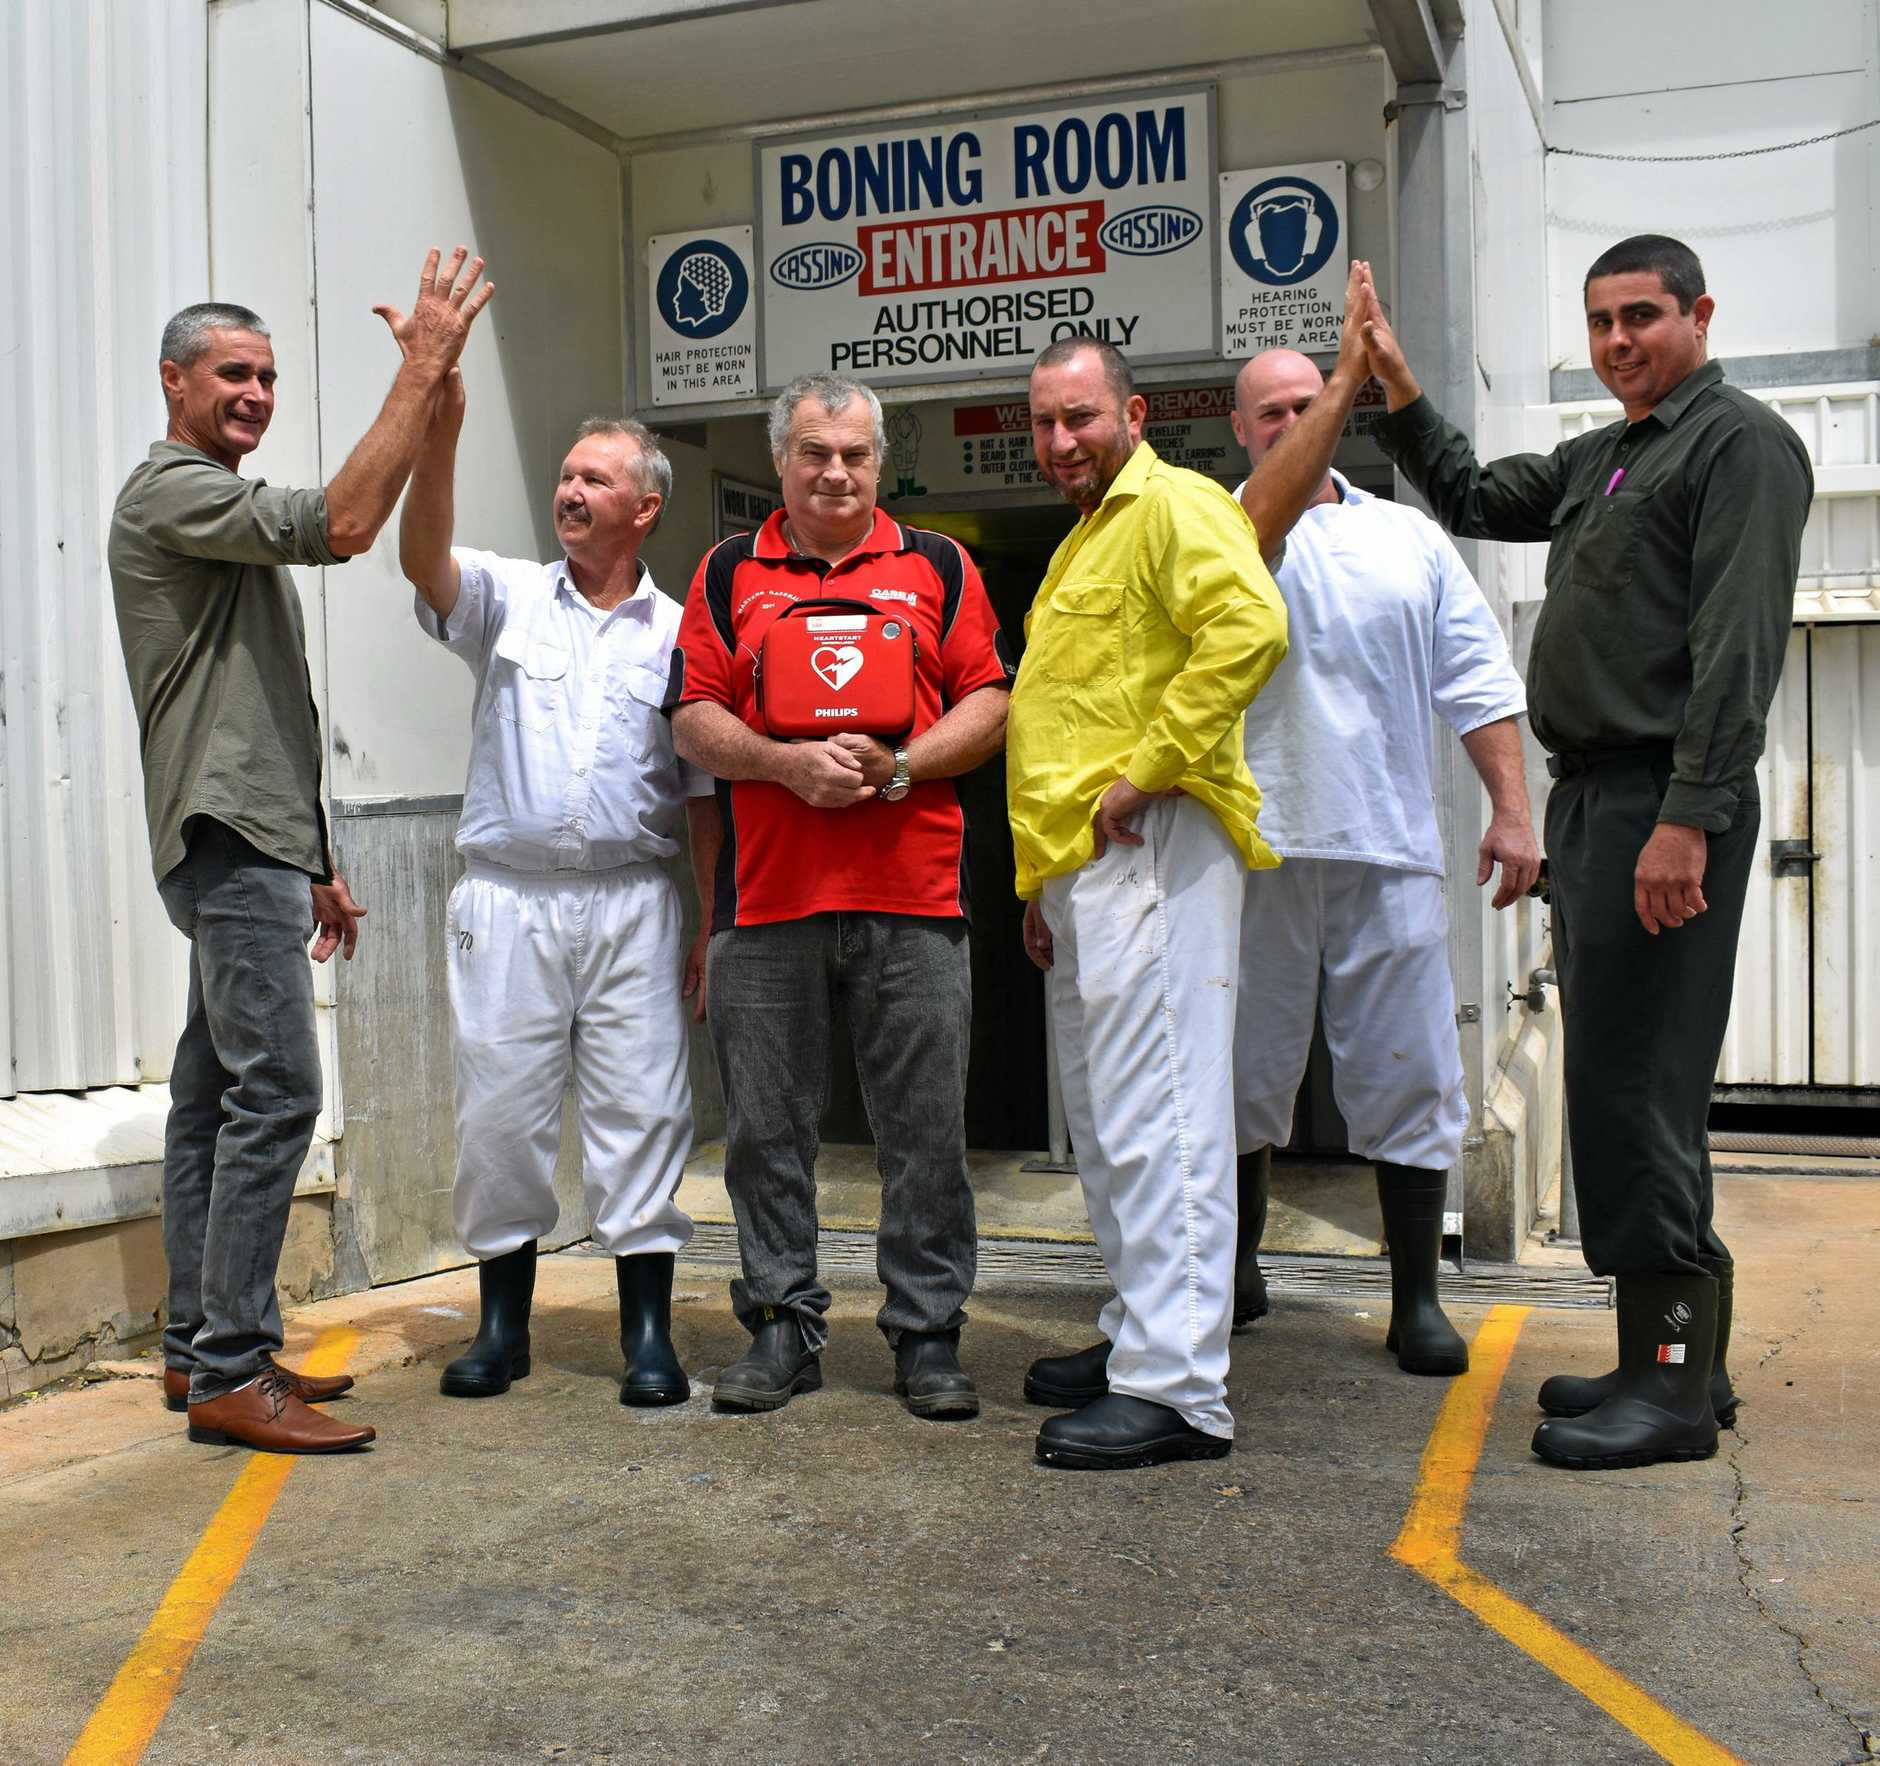 Dave Carroll in the centre holding the defibrillator, with the men who saved his life- Darren Grimston, Darrell Schultz, Jason Keep, Luke Murphy and Steve Formaggian outside the boning room at Casino's NCMC.